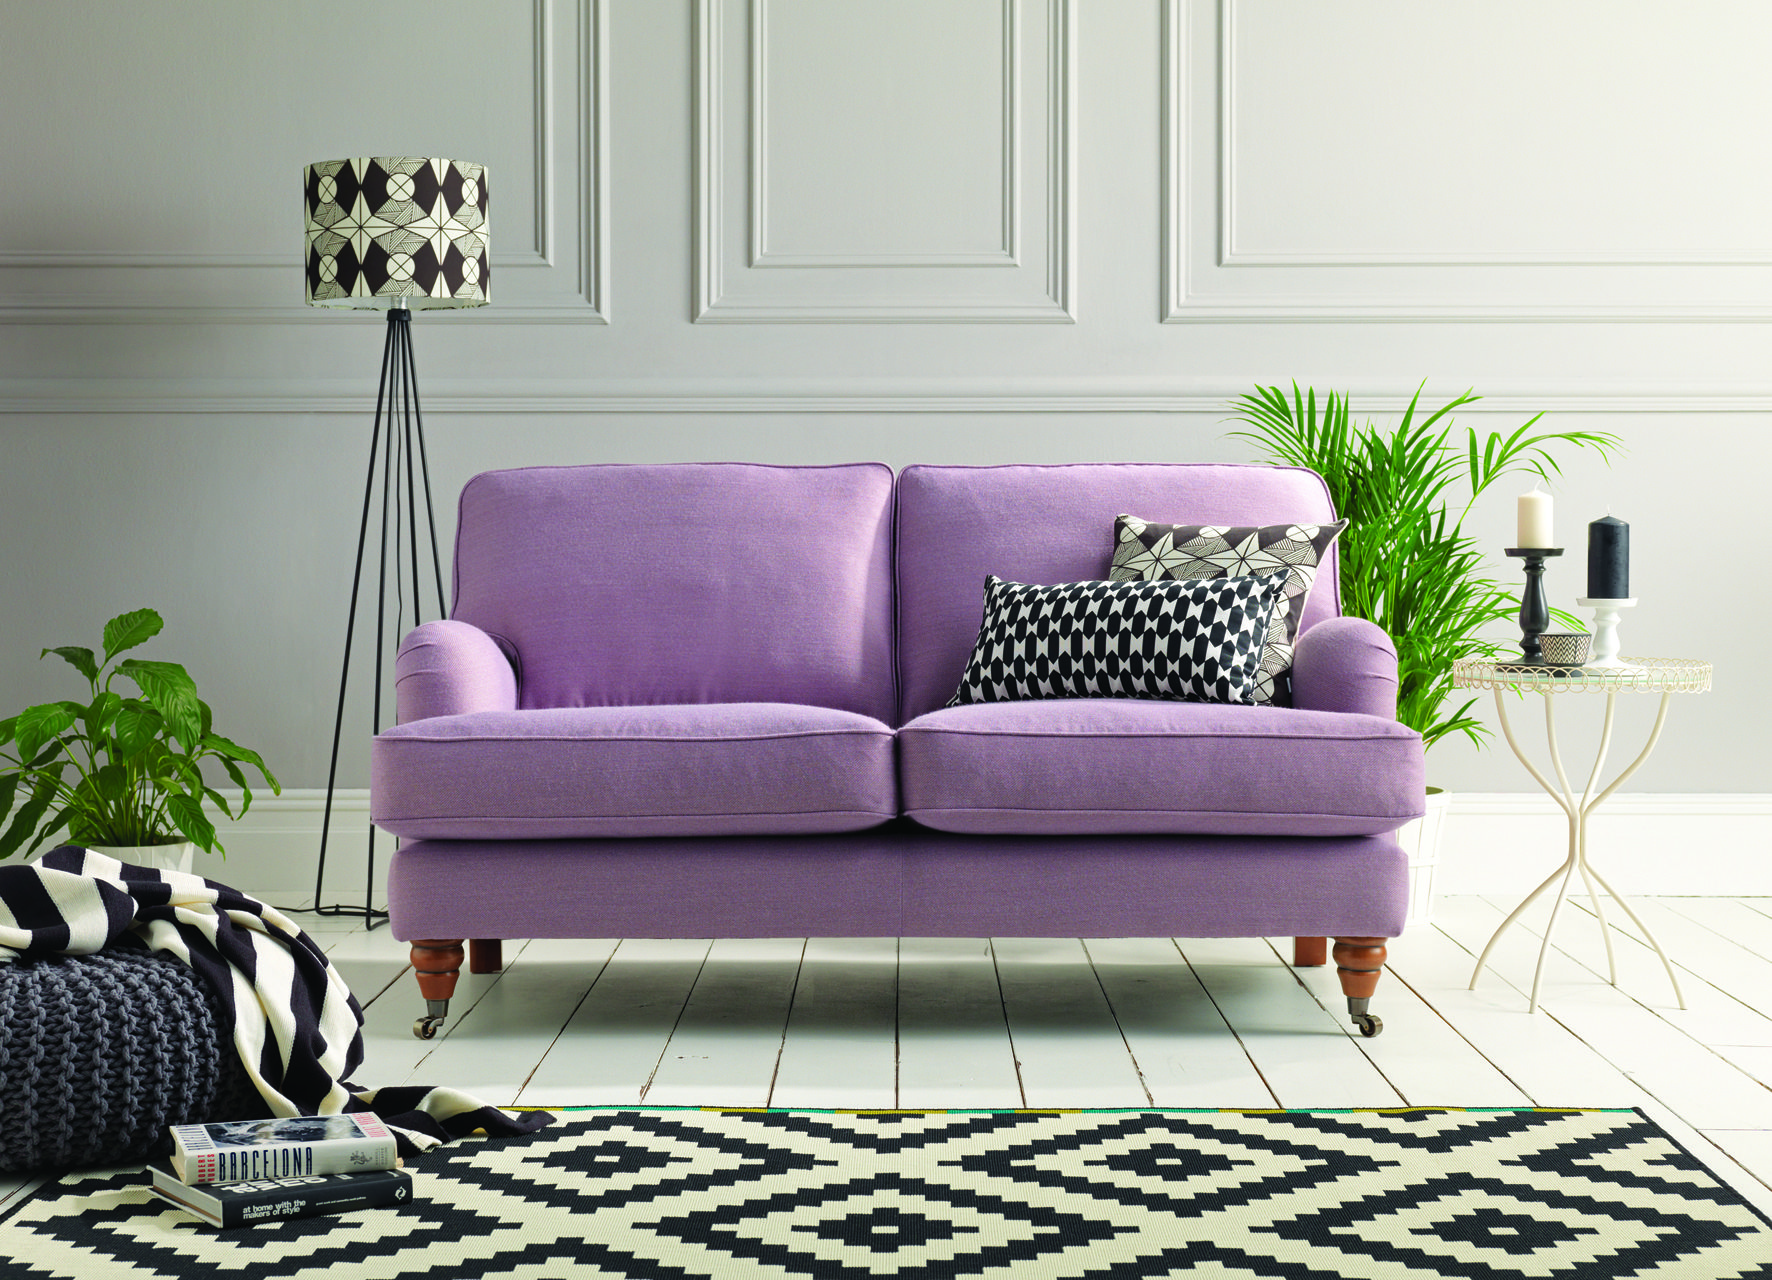 The Florence 2 seater sofa in Muirfield Lavender named after